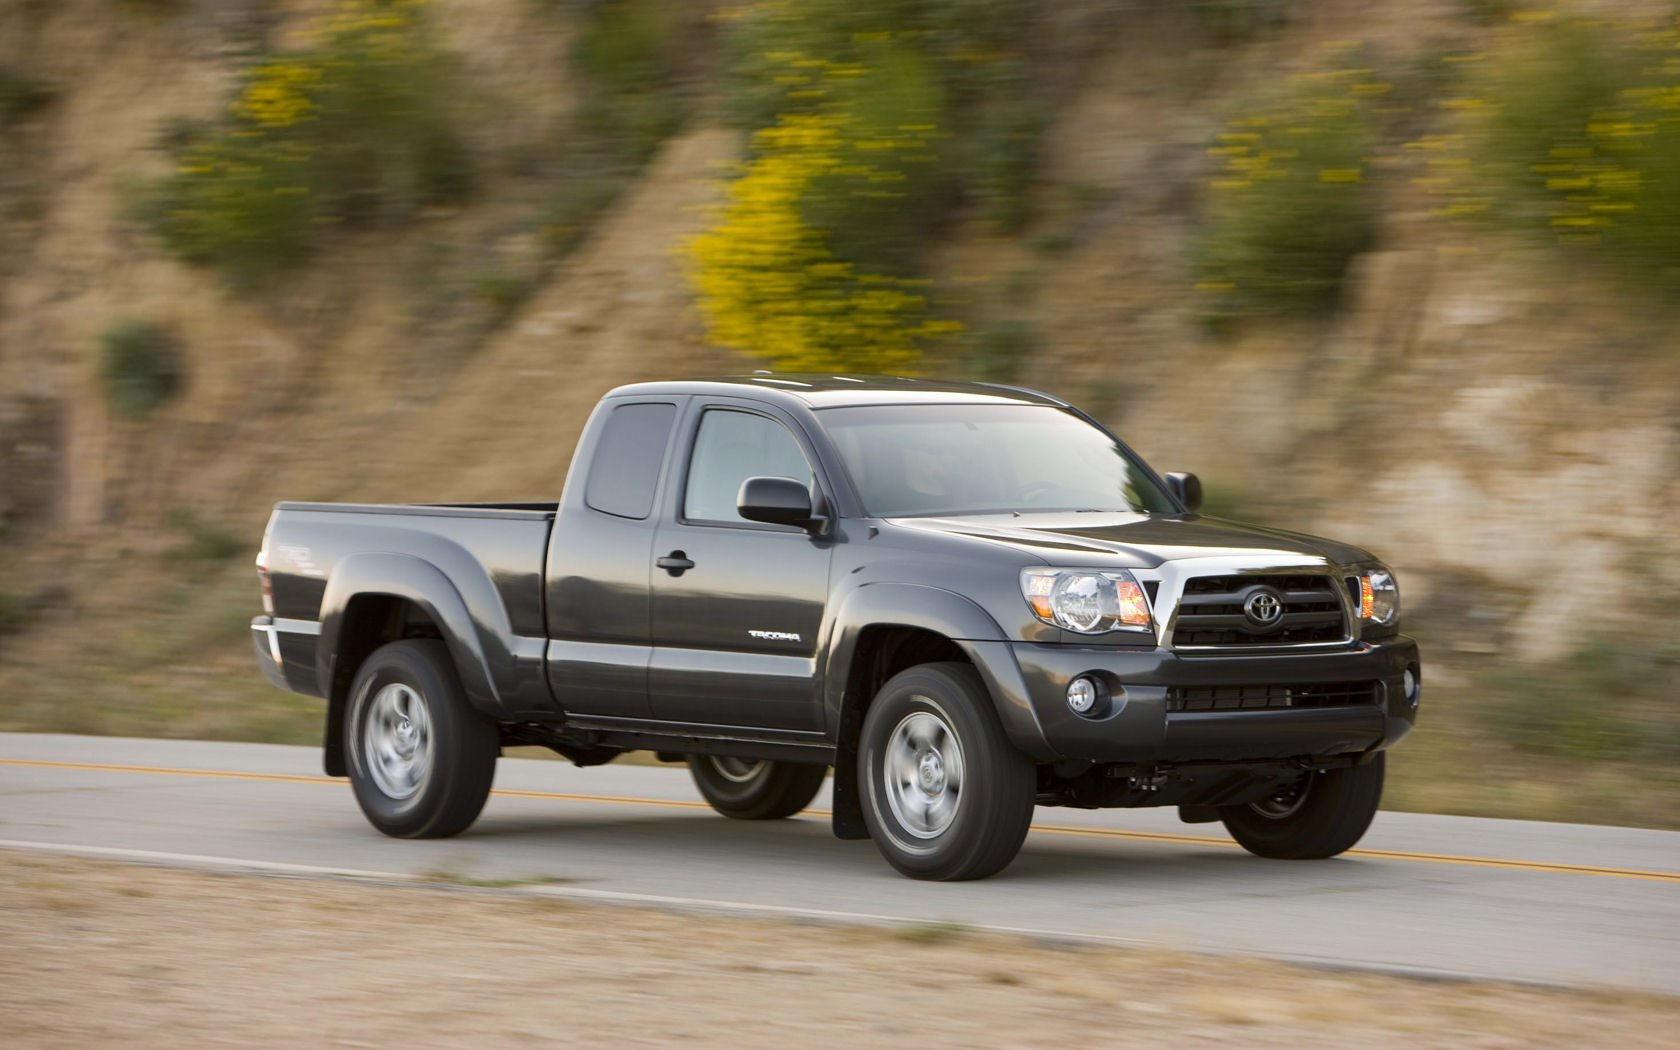 Tacoma Toyota Tacoma Desktop Wallpapers Widescreen Wallpaper 1680x1050